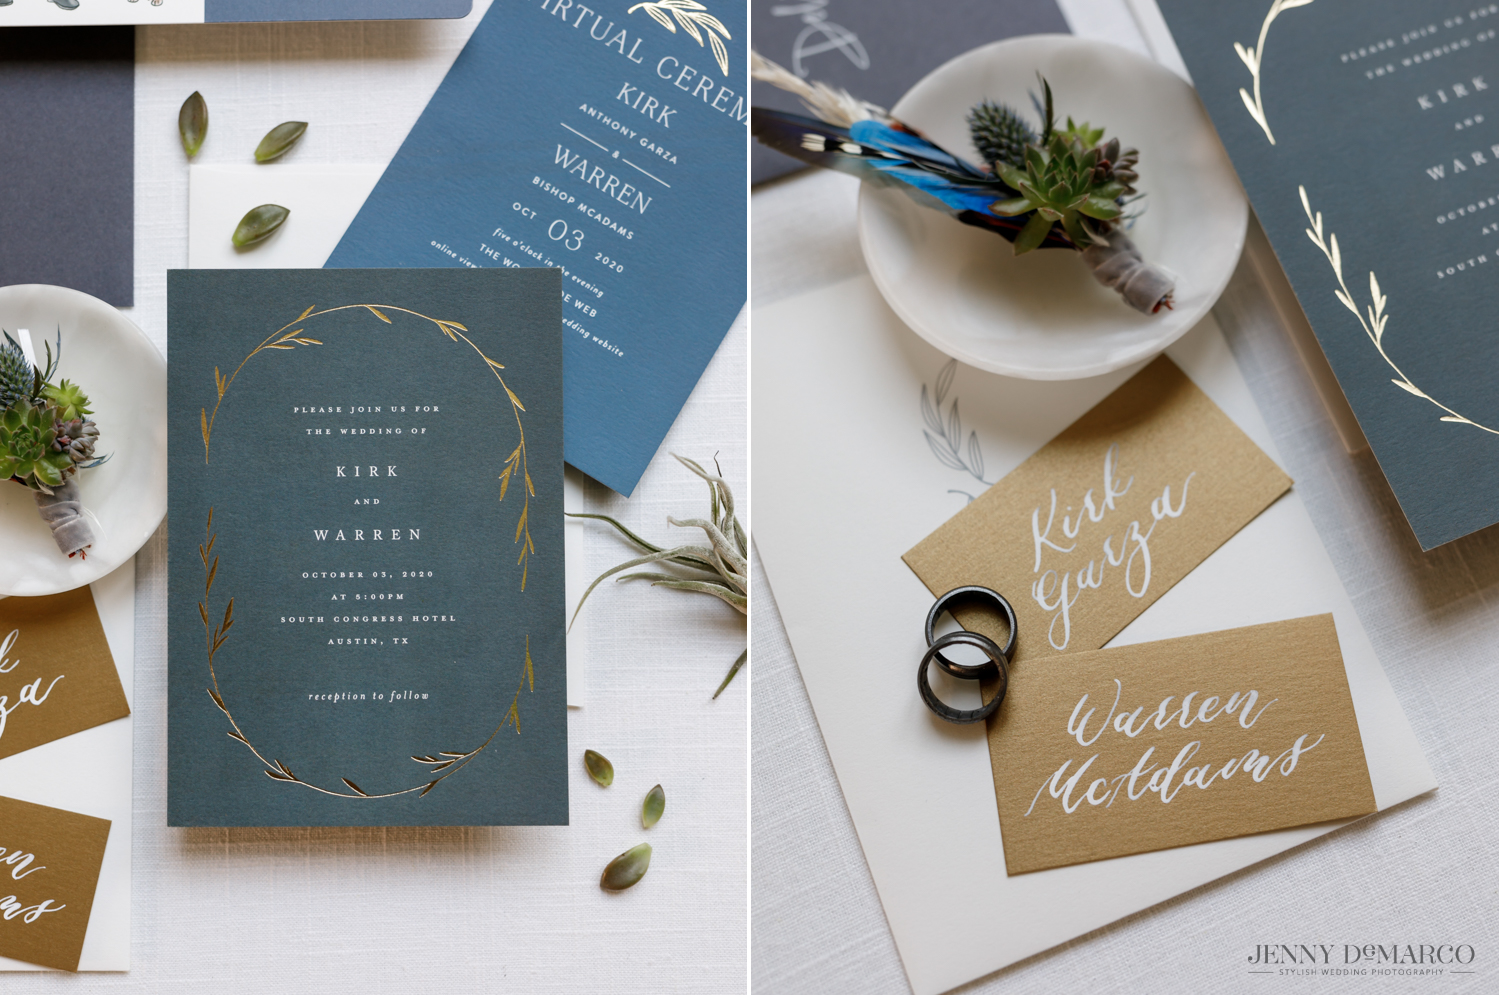 Left: staged wedding stationary; Right: staged name cards with grooms' rings